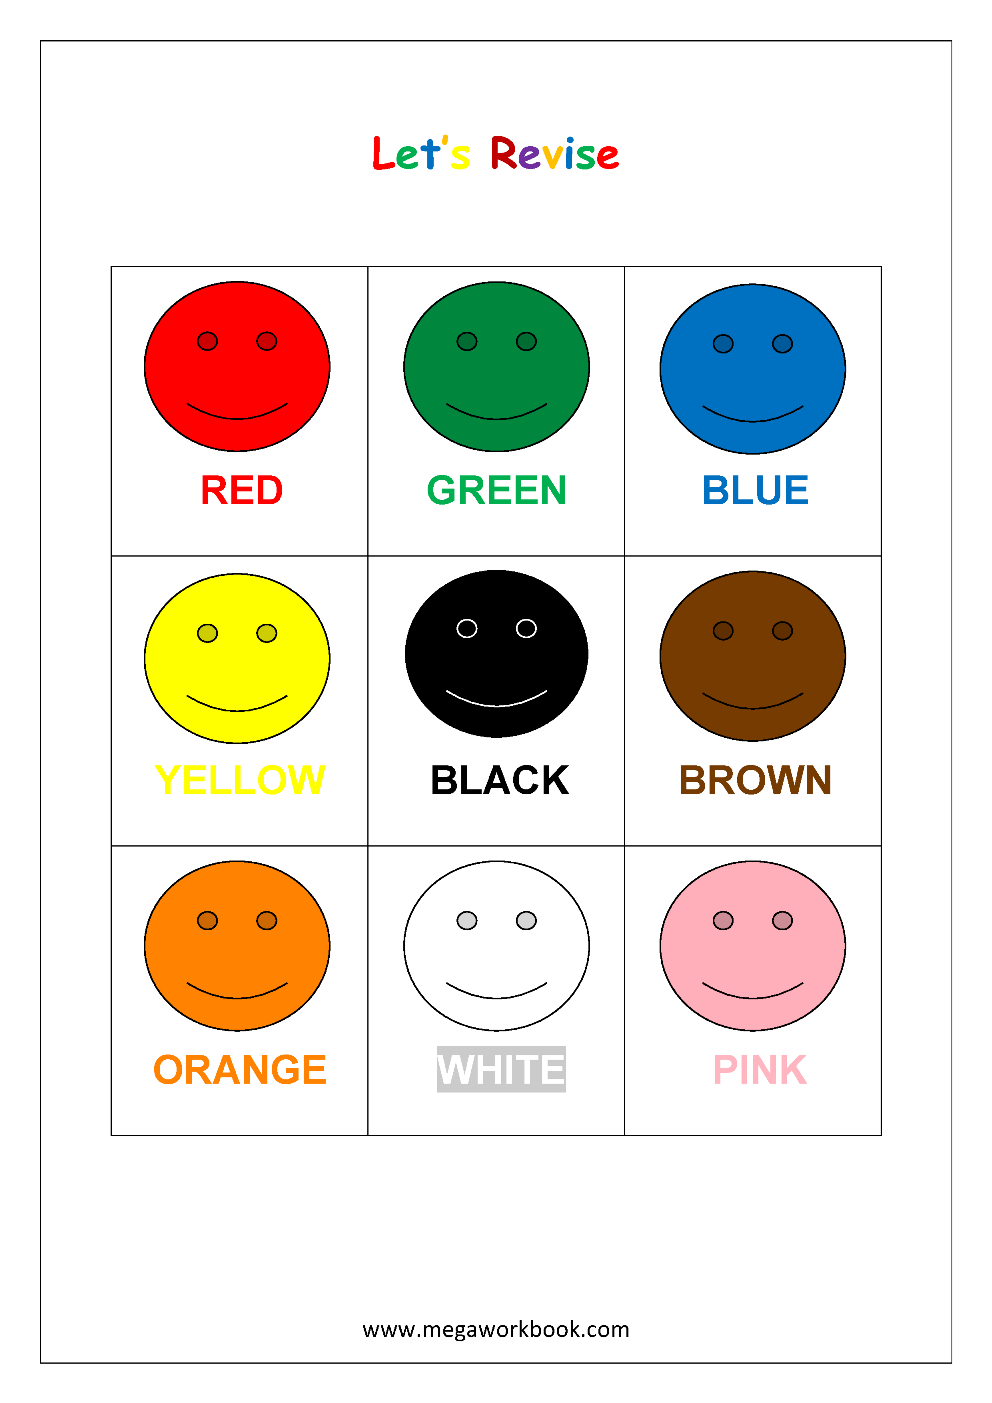 Free Printable Color Recognition Worksheets - Learn Basic Colors - Color Recognition Worksheets Free Printable